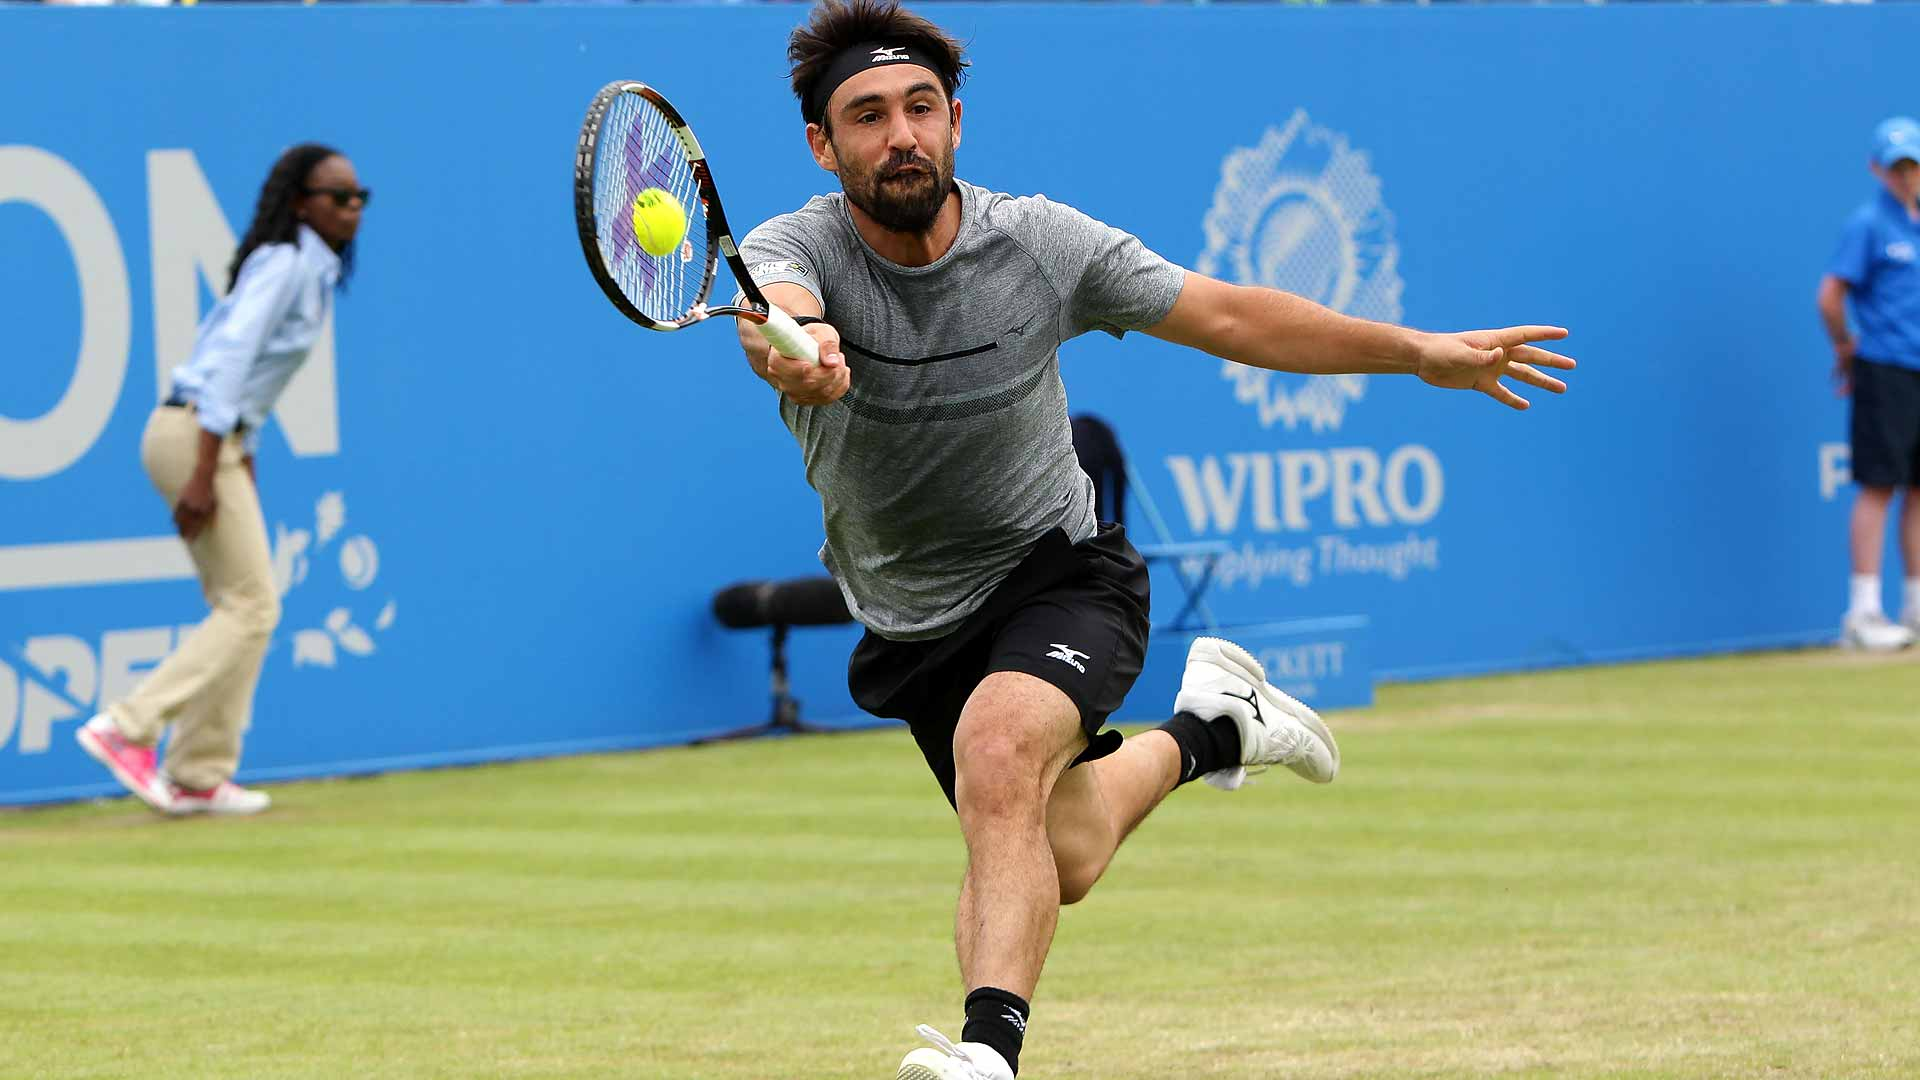 Marcos Baghdatis VS Andrey Rublev Prediction